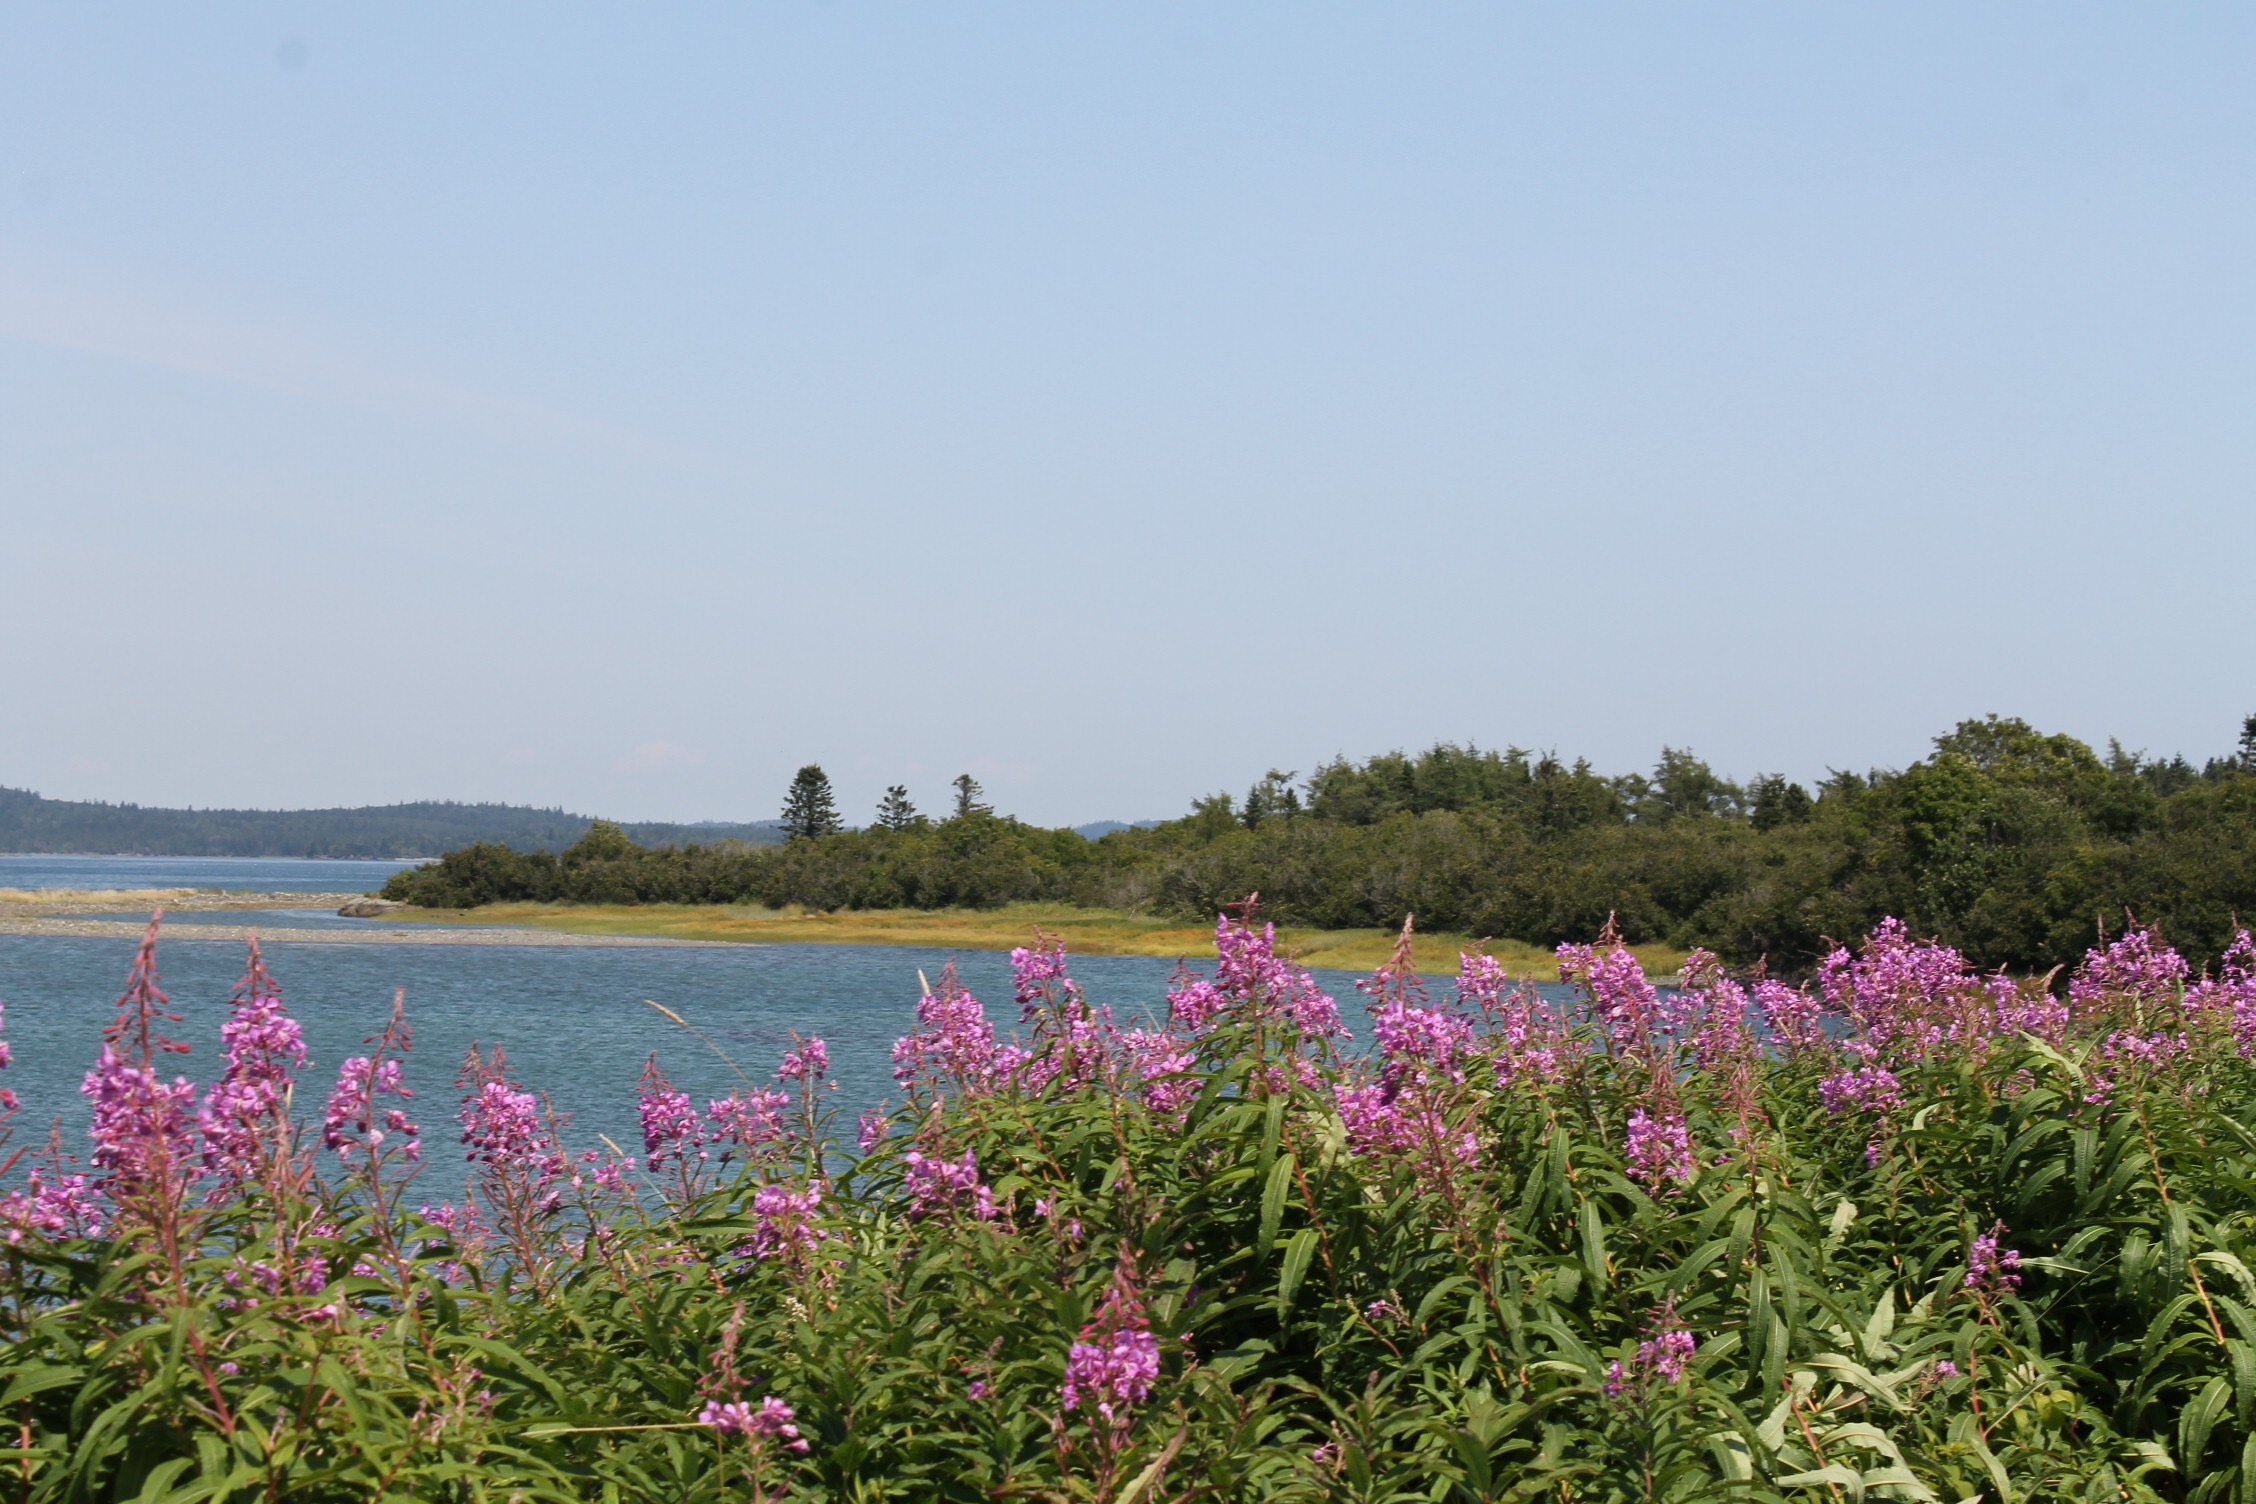 On the way to Quoddy Head State Park.